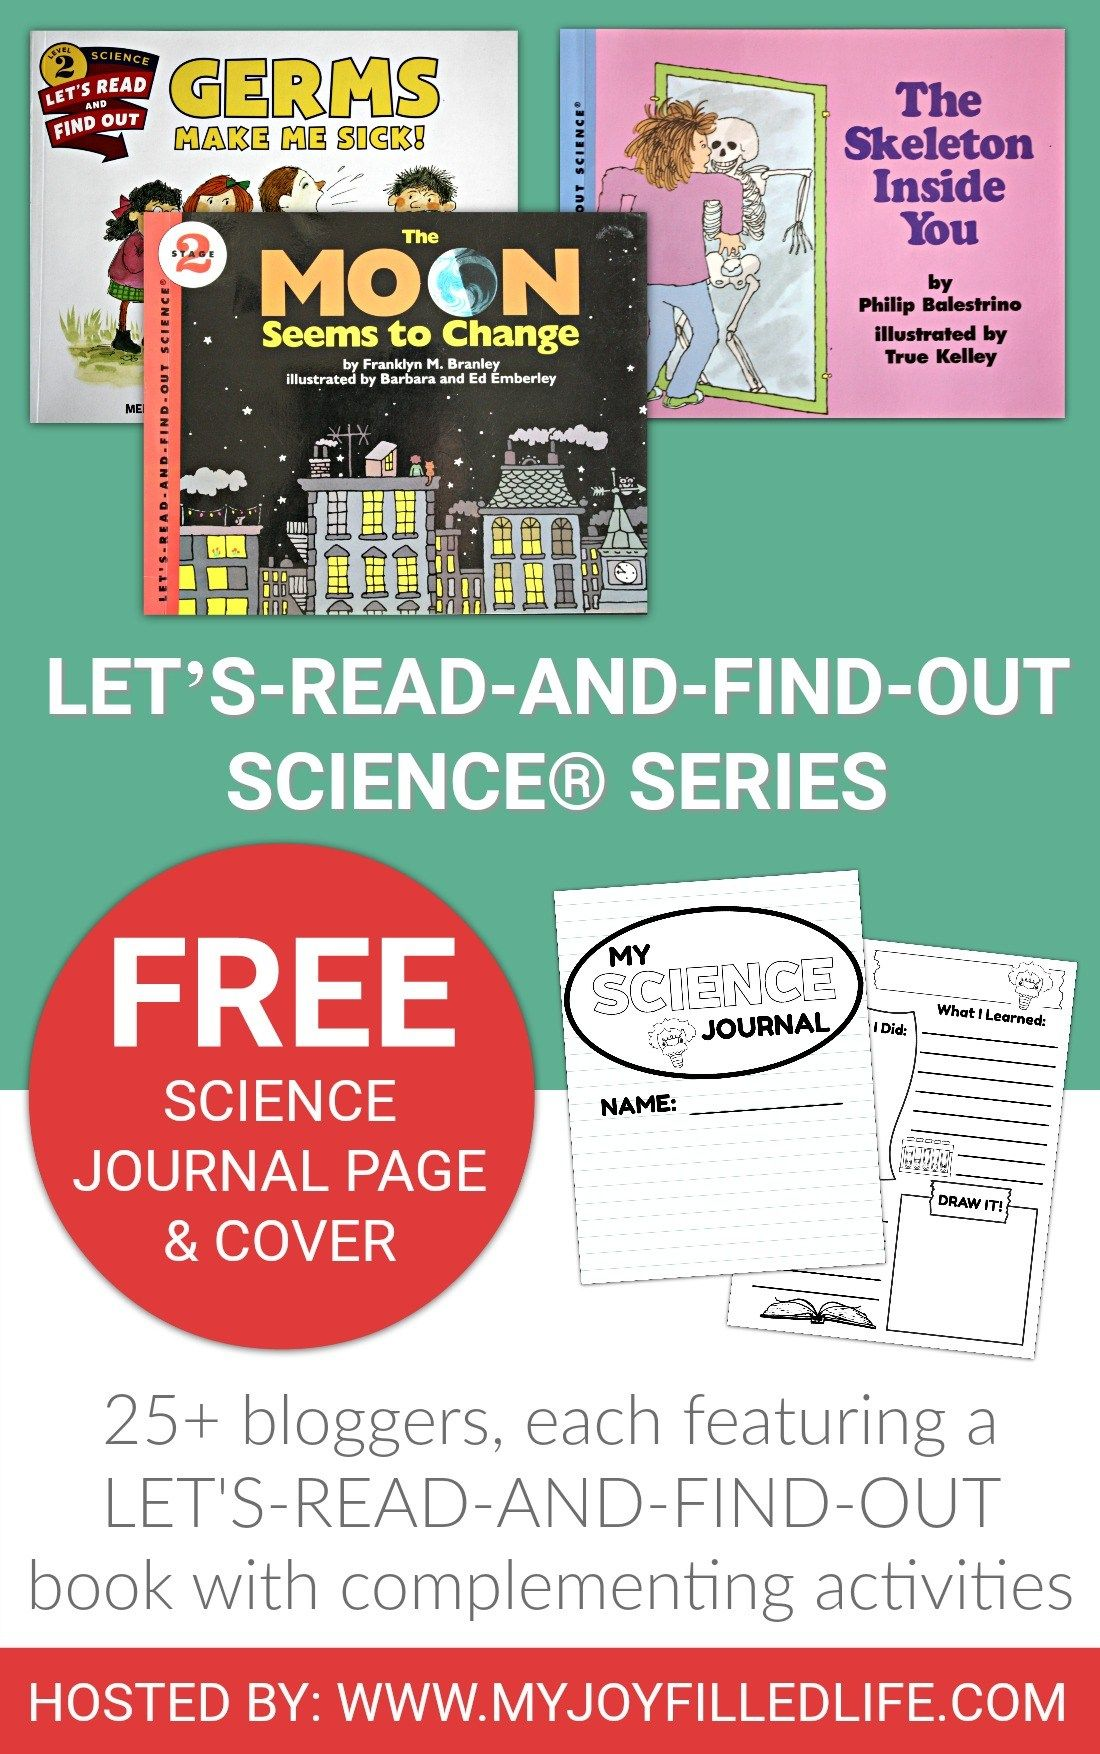 Let's Read and Find Out Science Books and Activities - 25+ bloggers, each featuring a Let's Read and Find Out book with complementing activity.